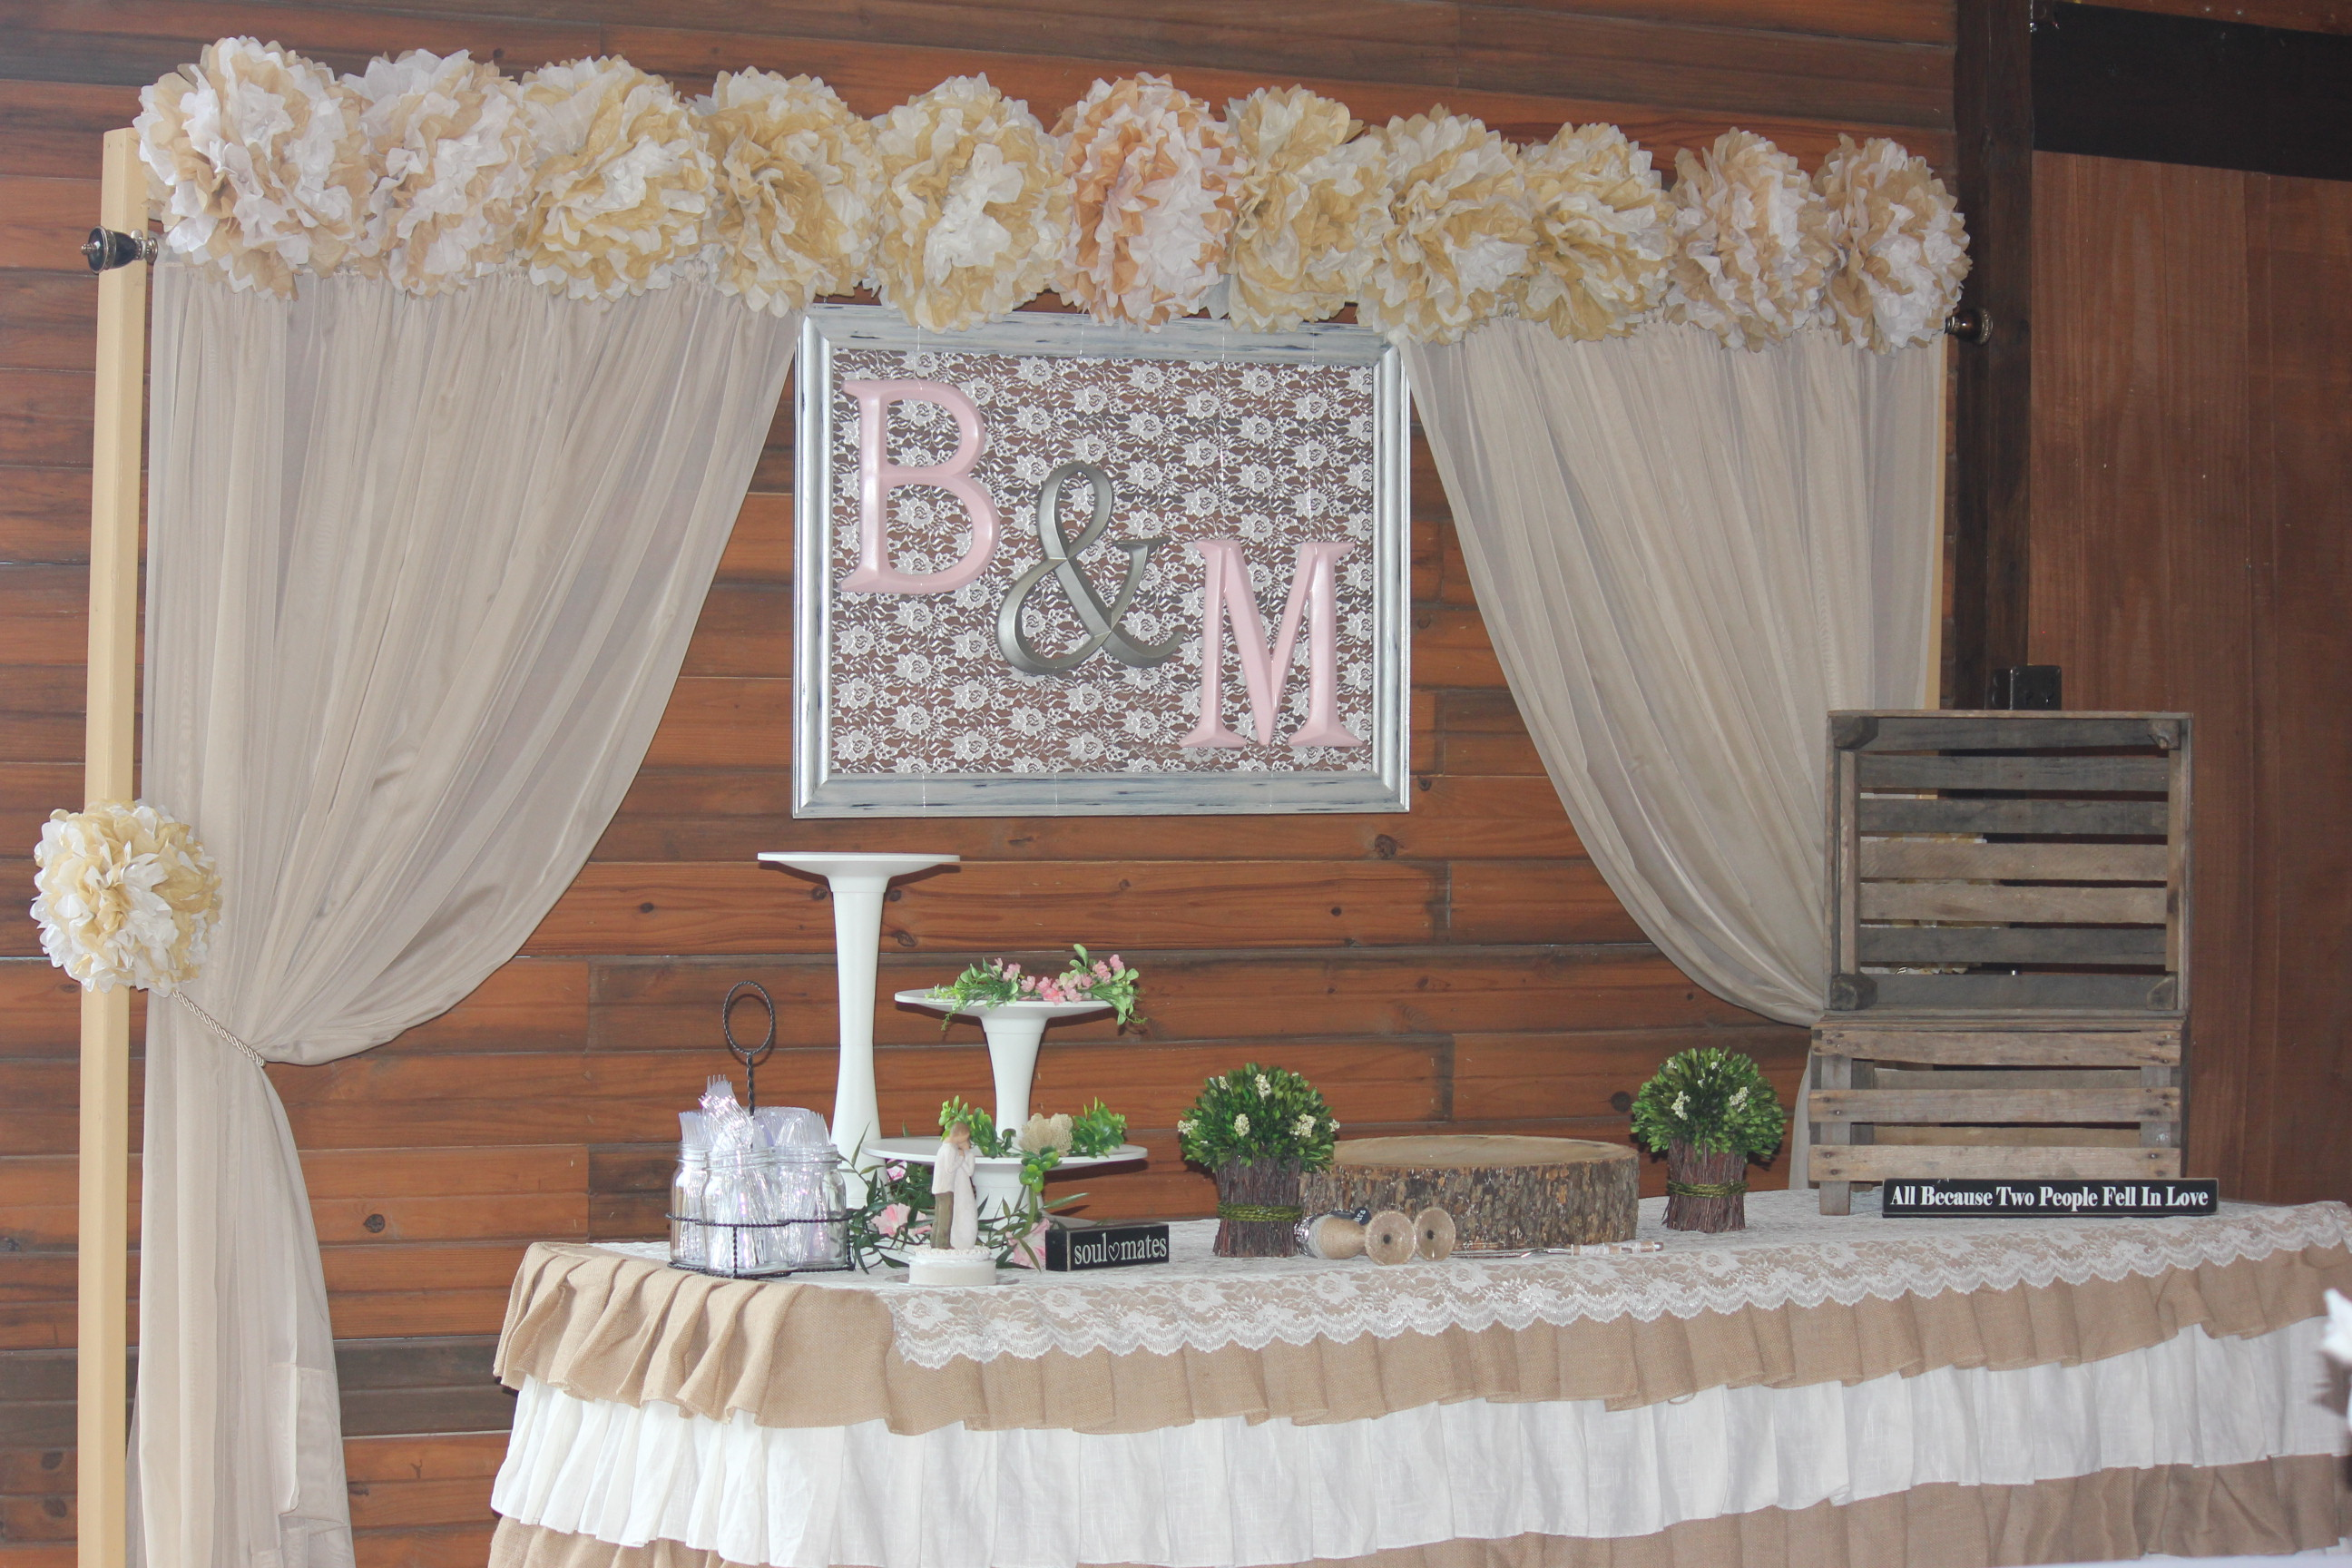 DIY Backdrops For Your Wedding Day?